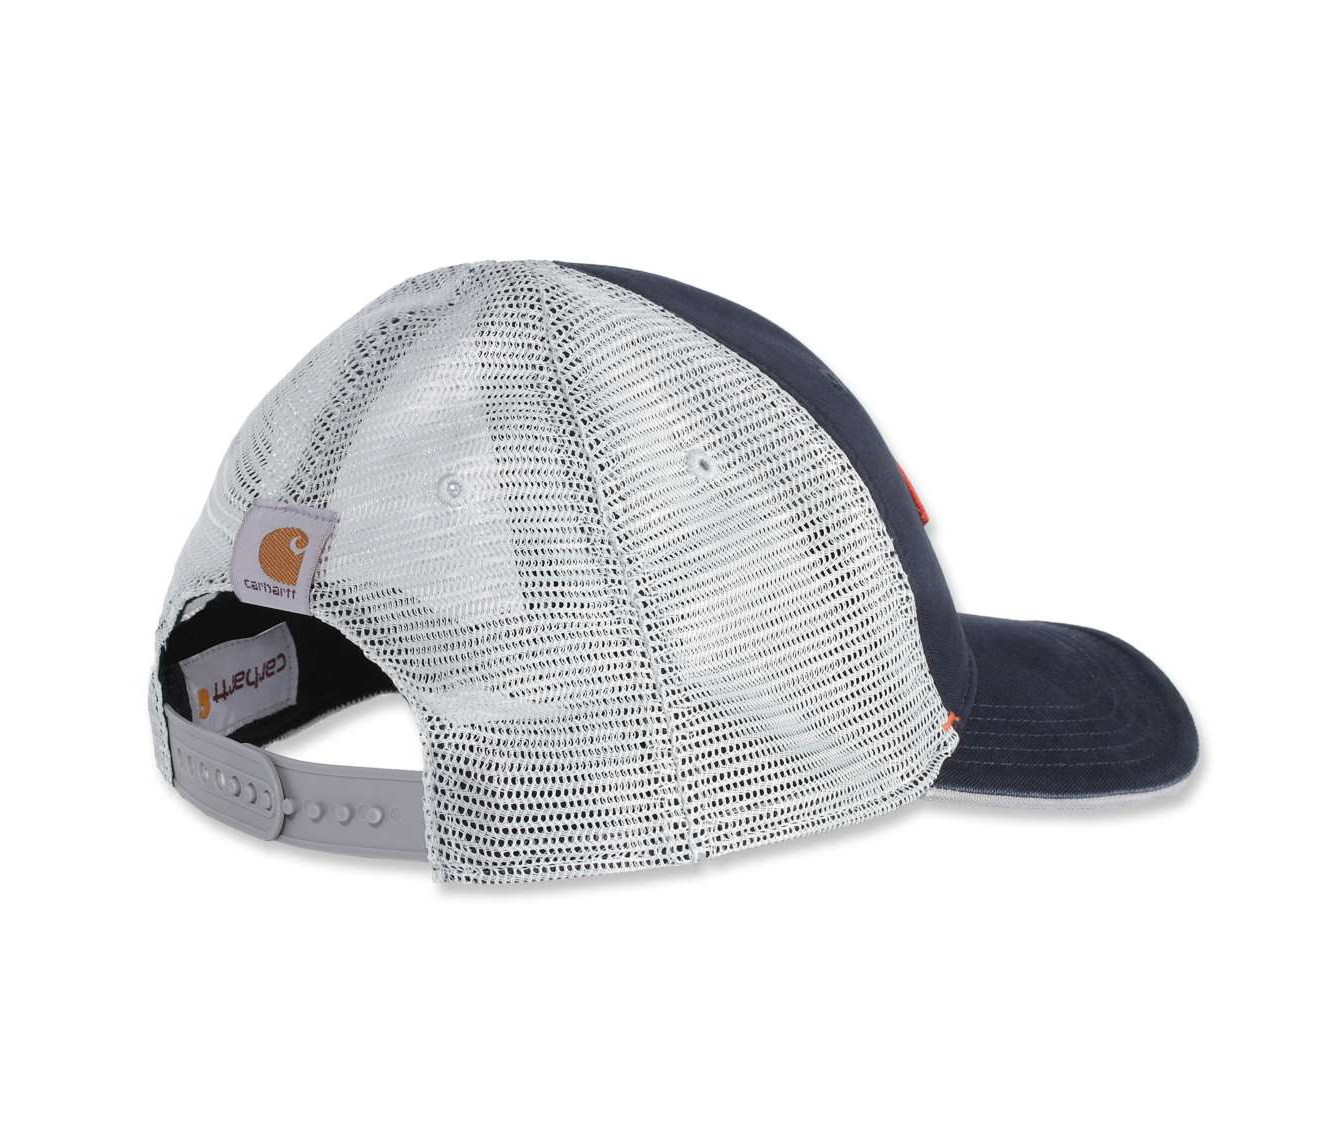 Angled rear of Carhartt CH104335 Silvermine Cap showing silver, 100% polyester mesh and Carhartt sewn label.